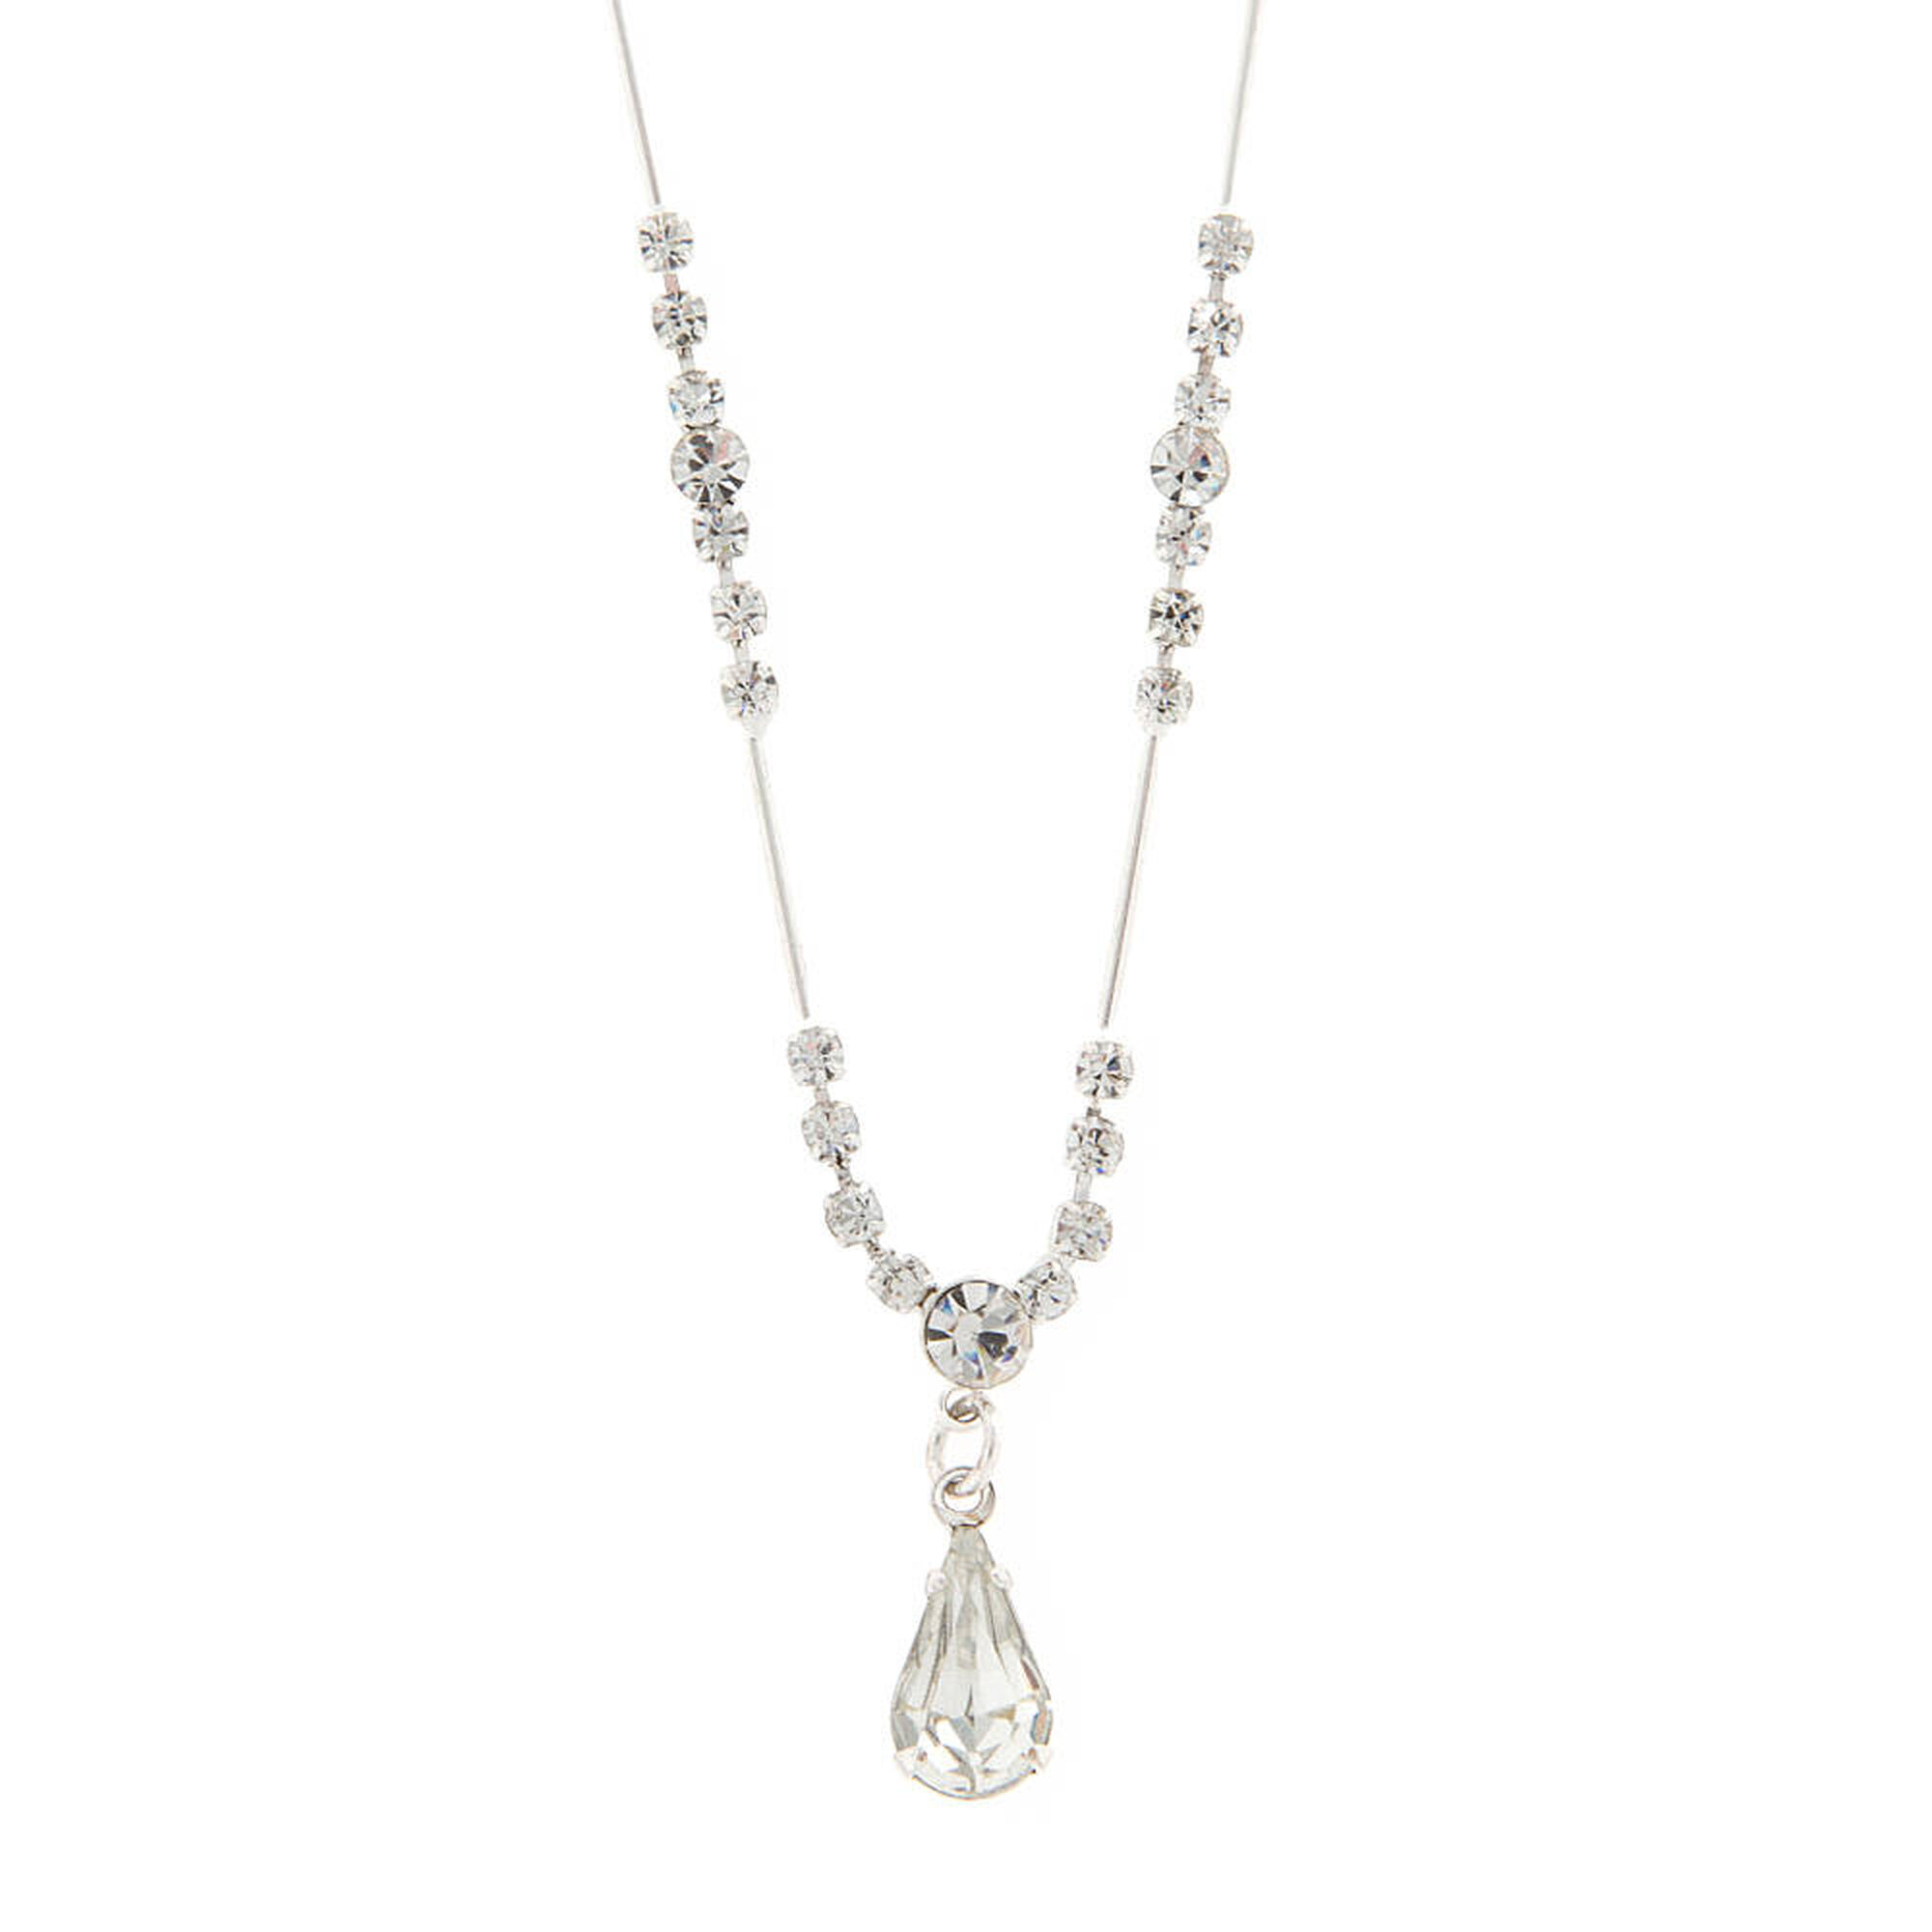 Crystal teardrop y necklace claires us crystal teardrop y necklace aloadofball Gallery